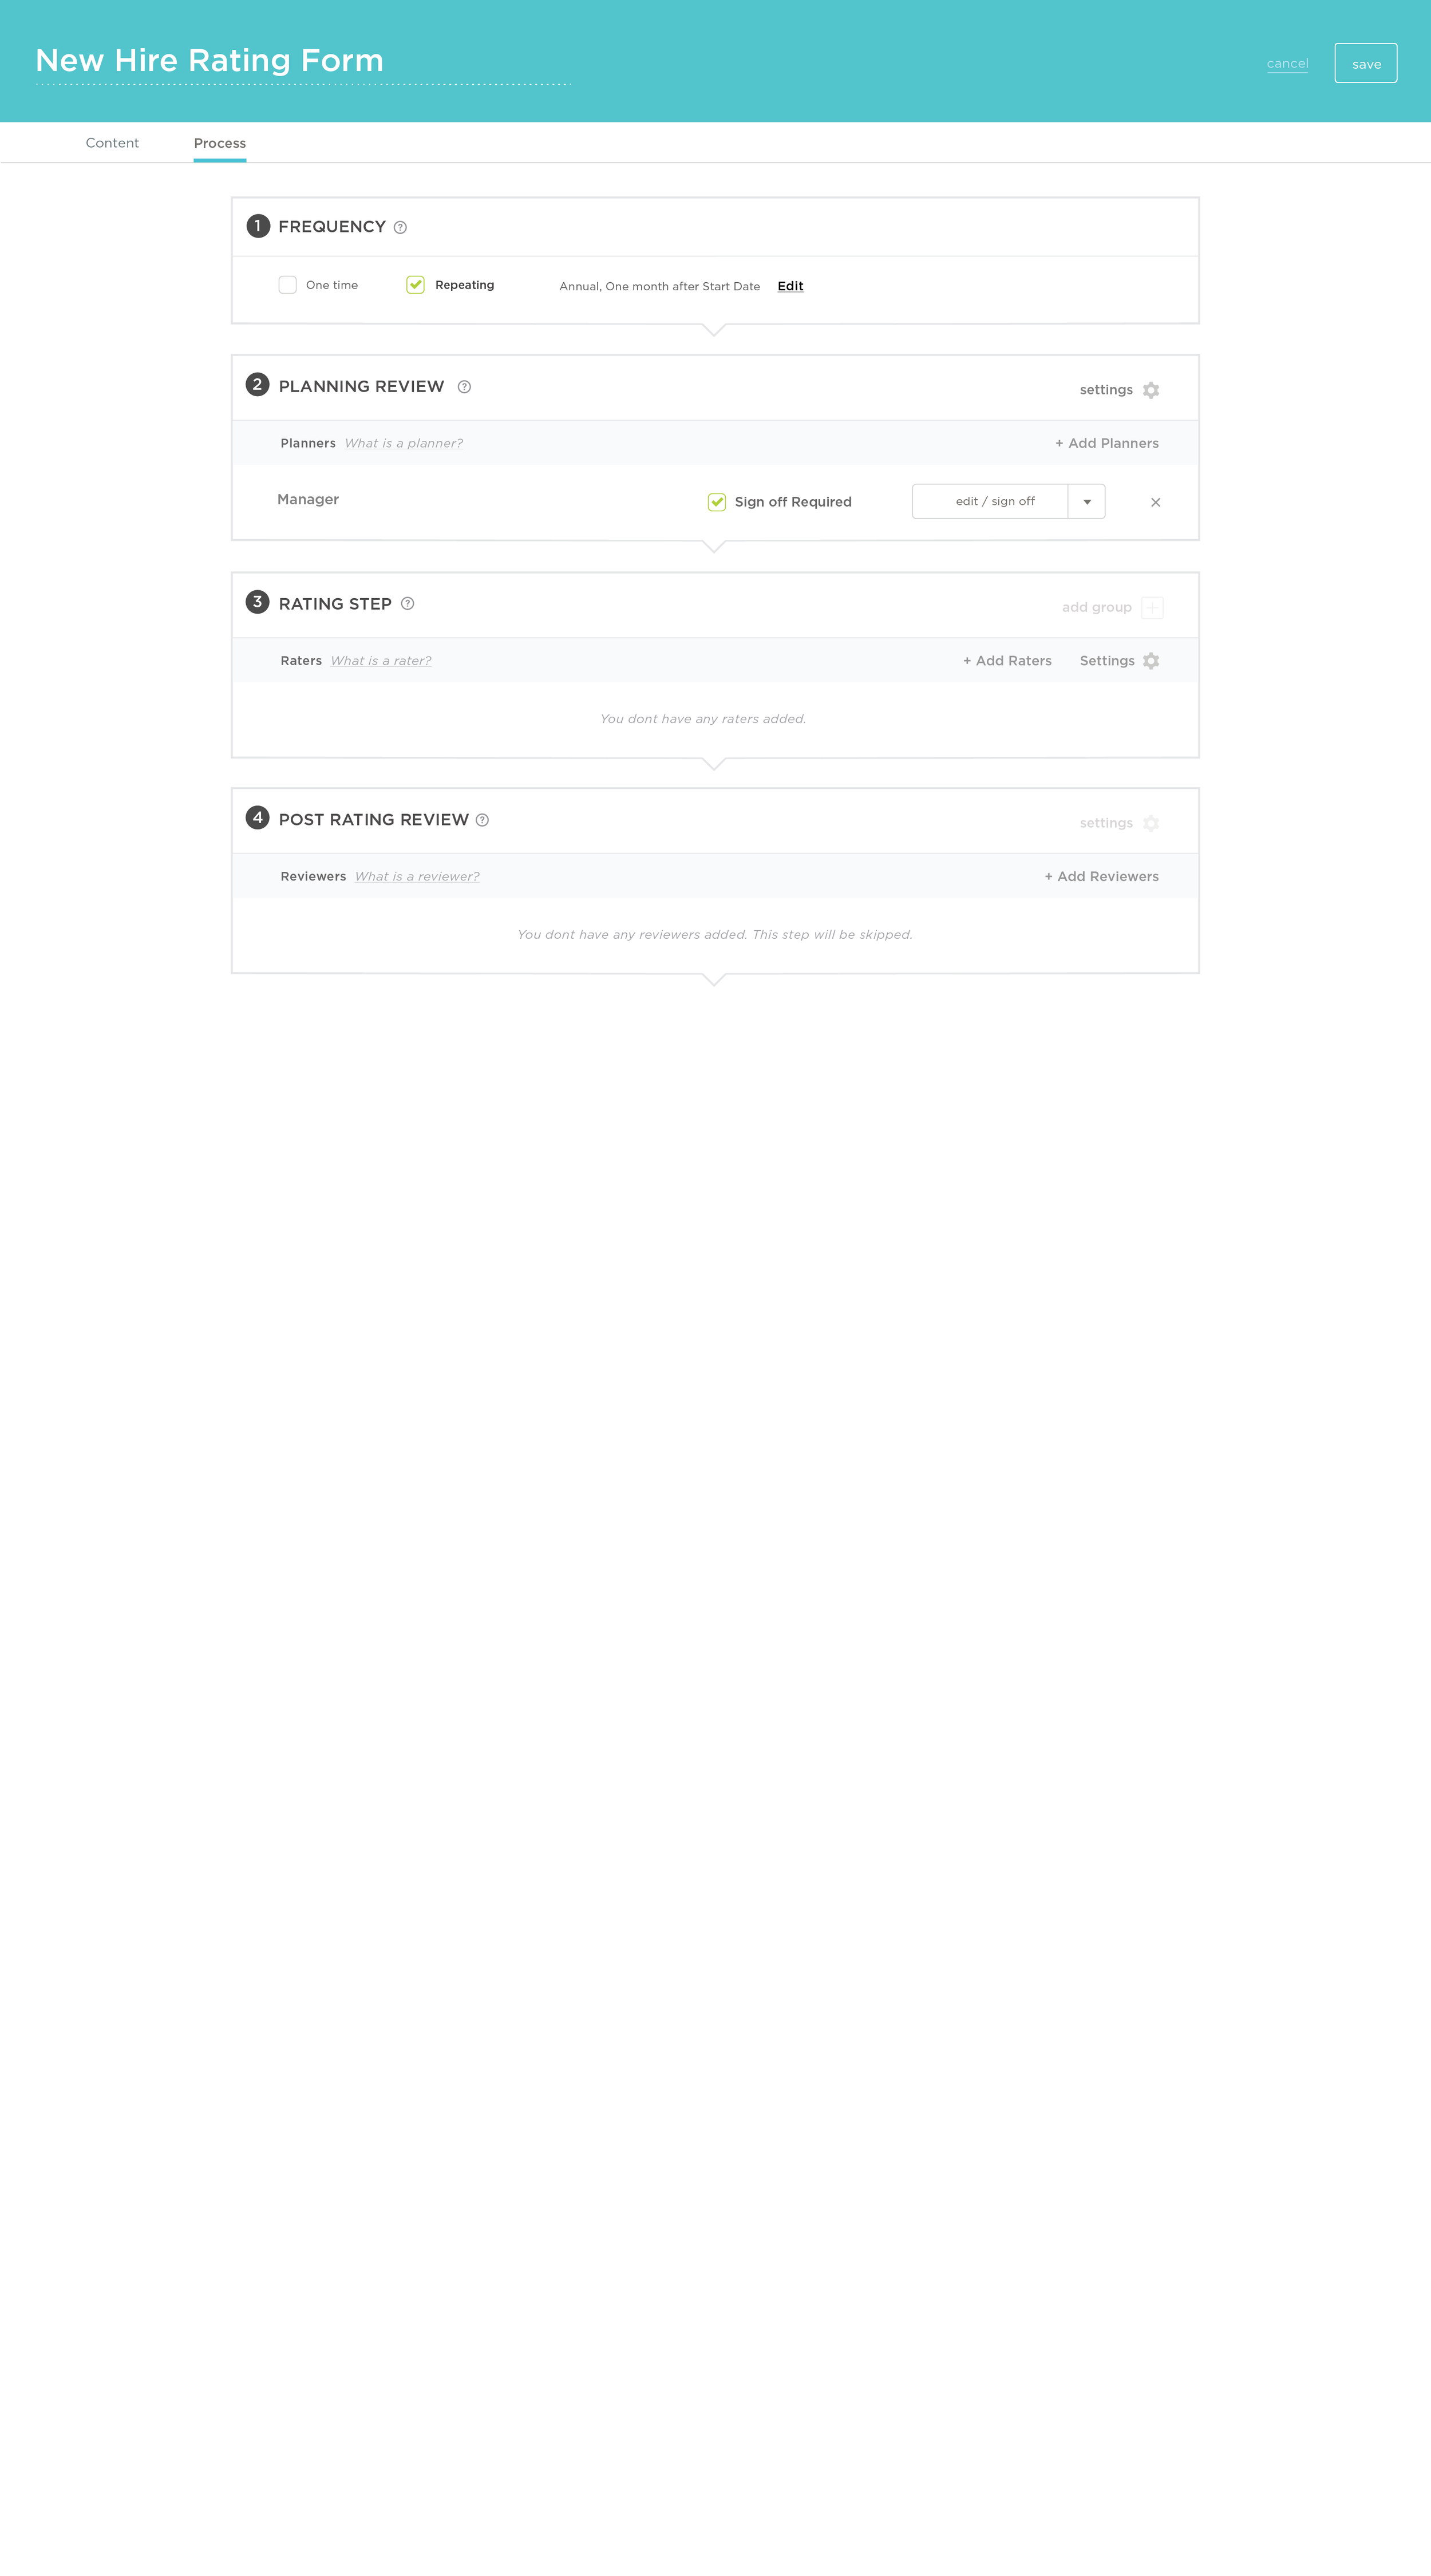 Invision_Pe_rating-form-process_03_7.png